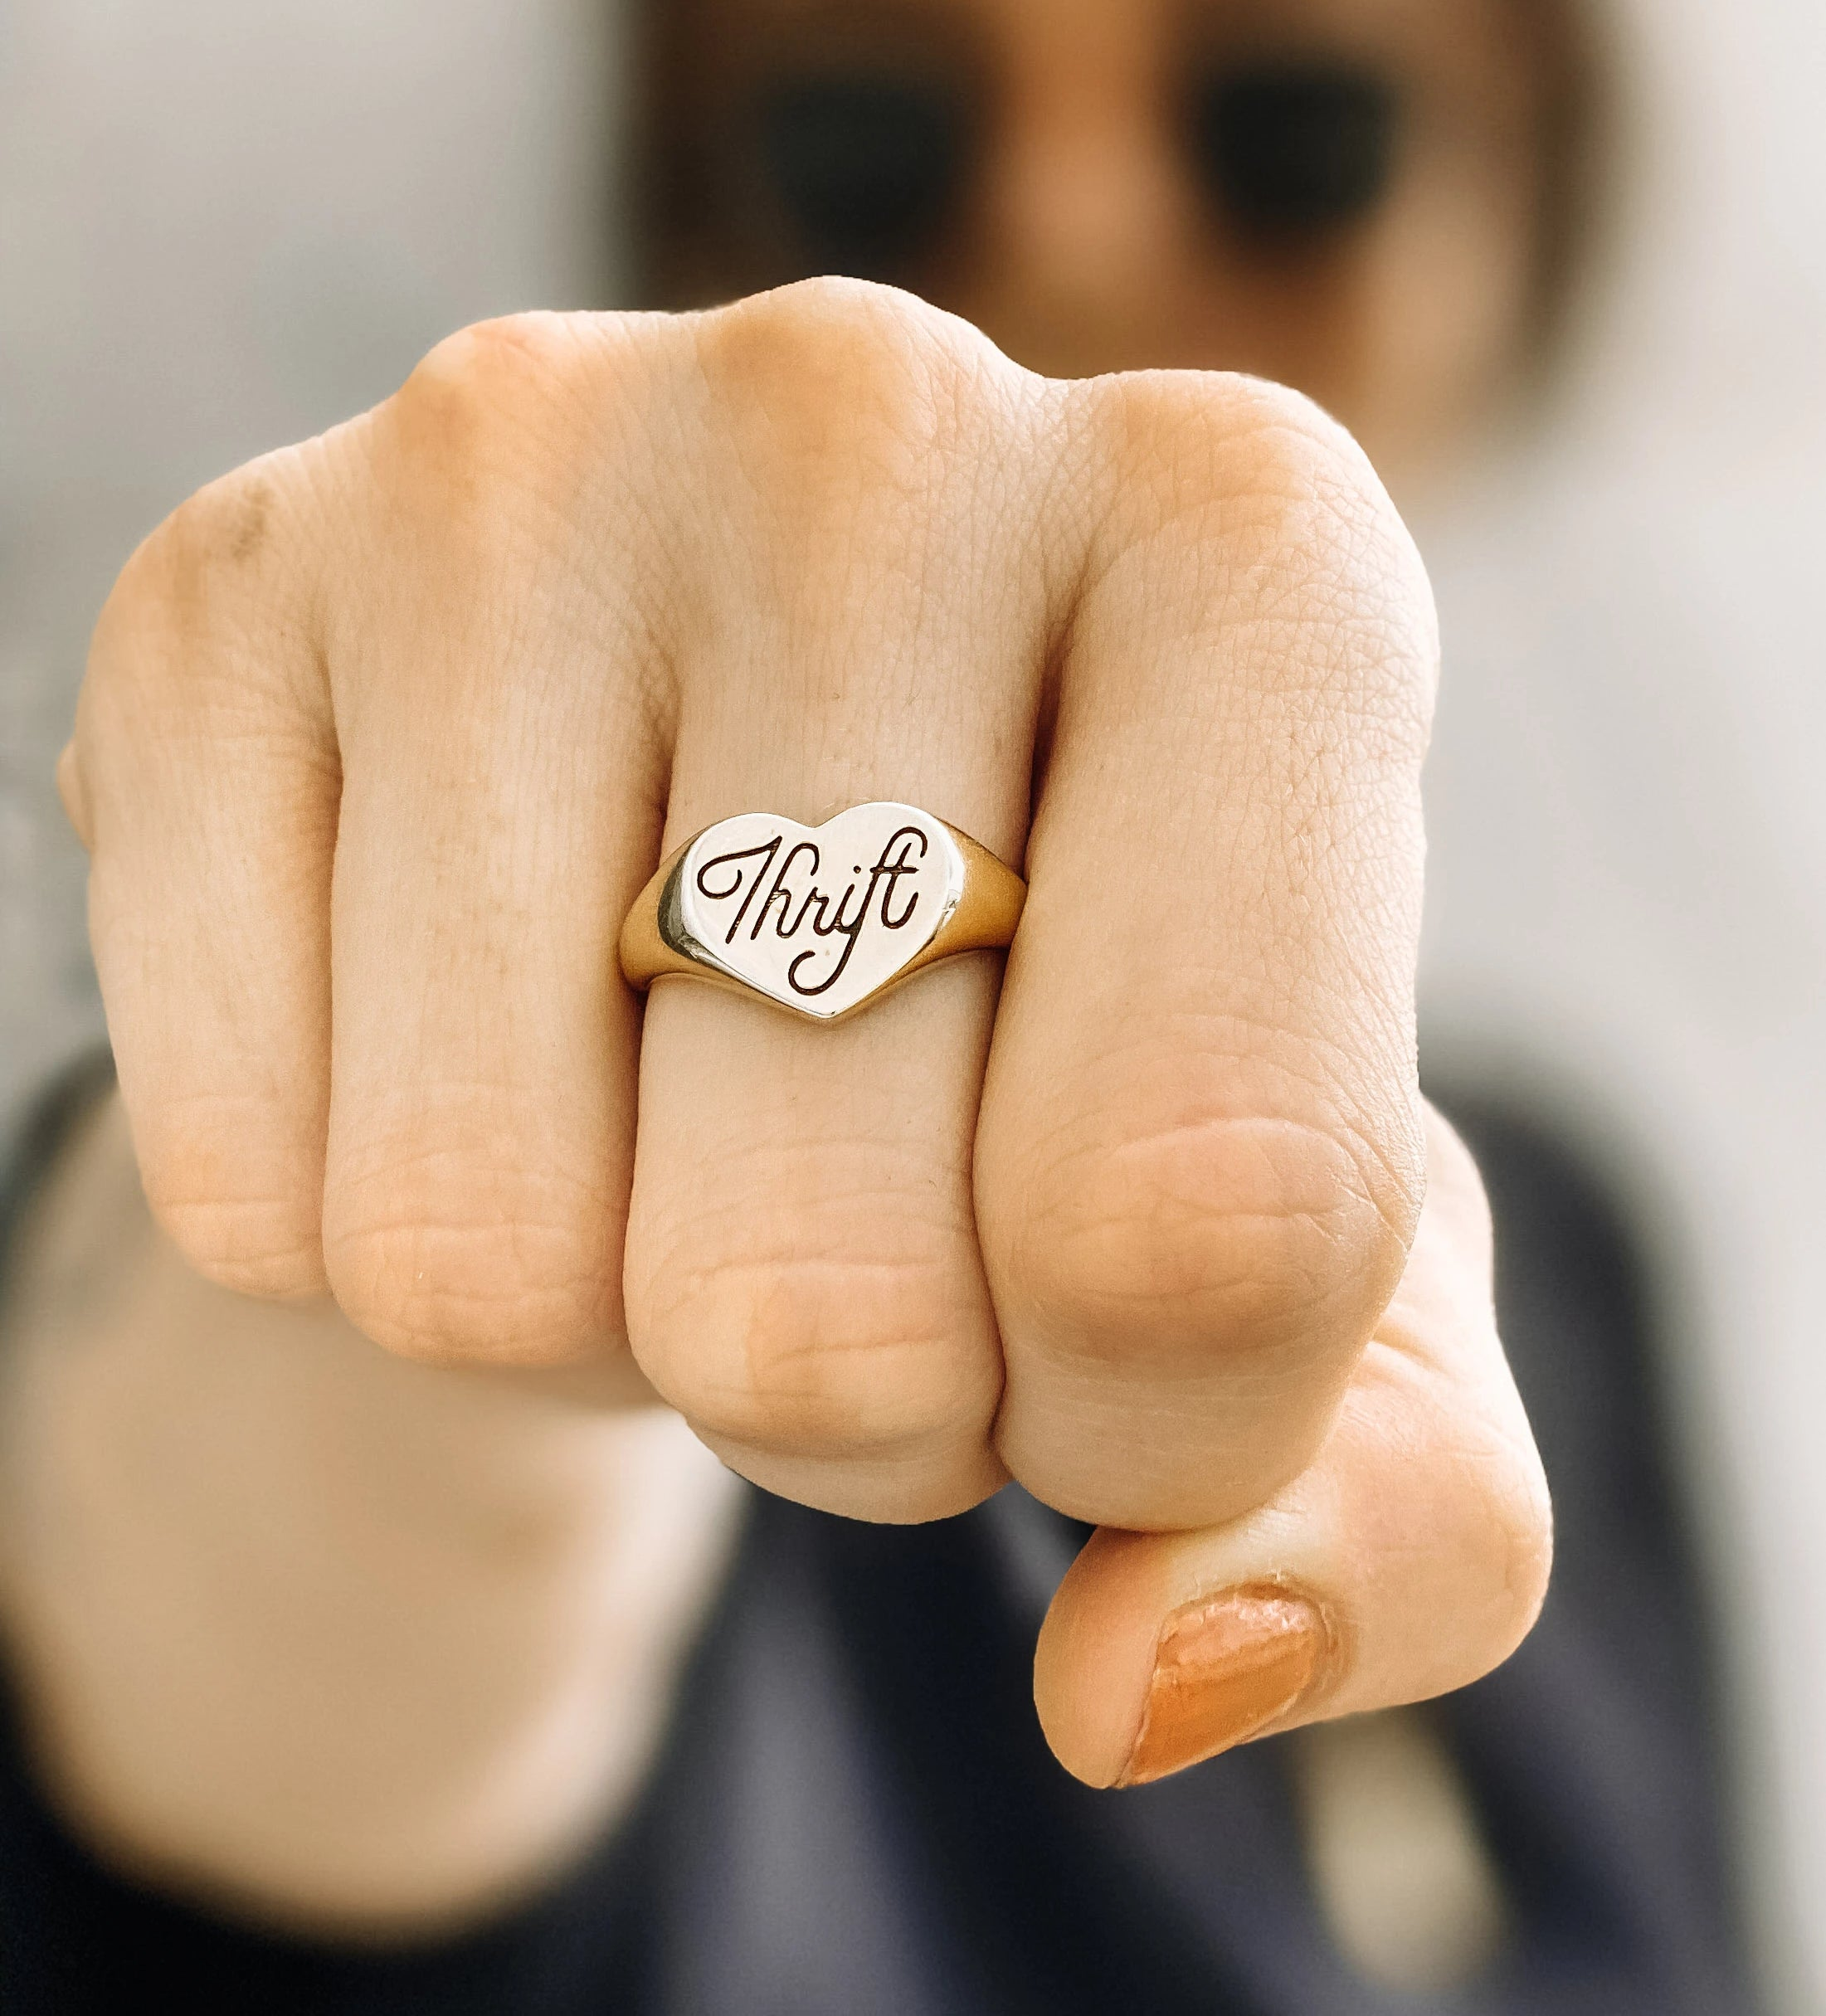 Thrift Ring worn on a fist in the camerea